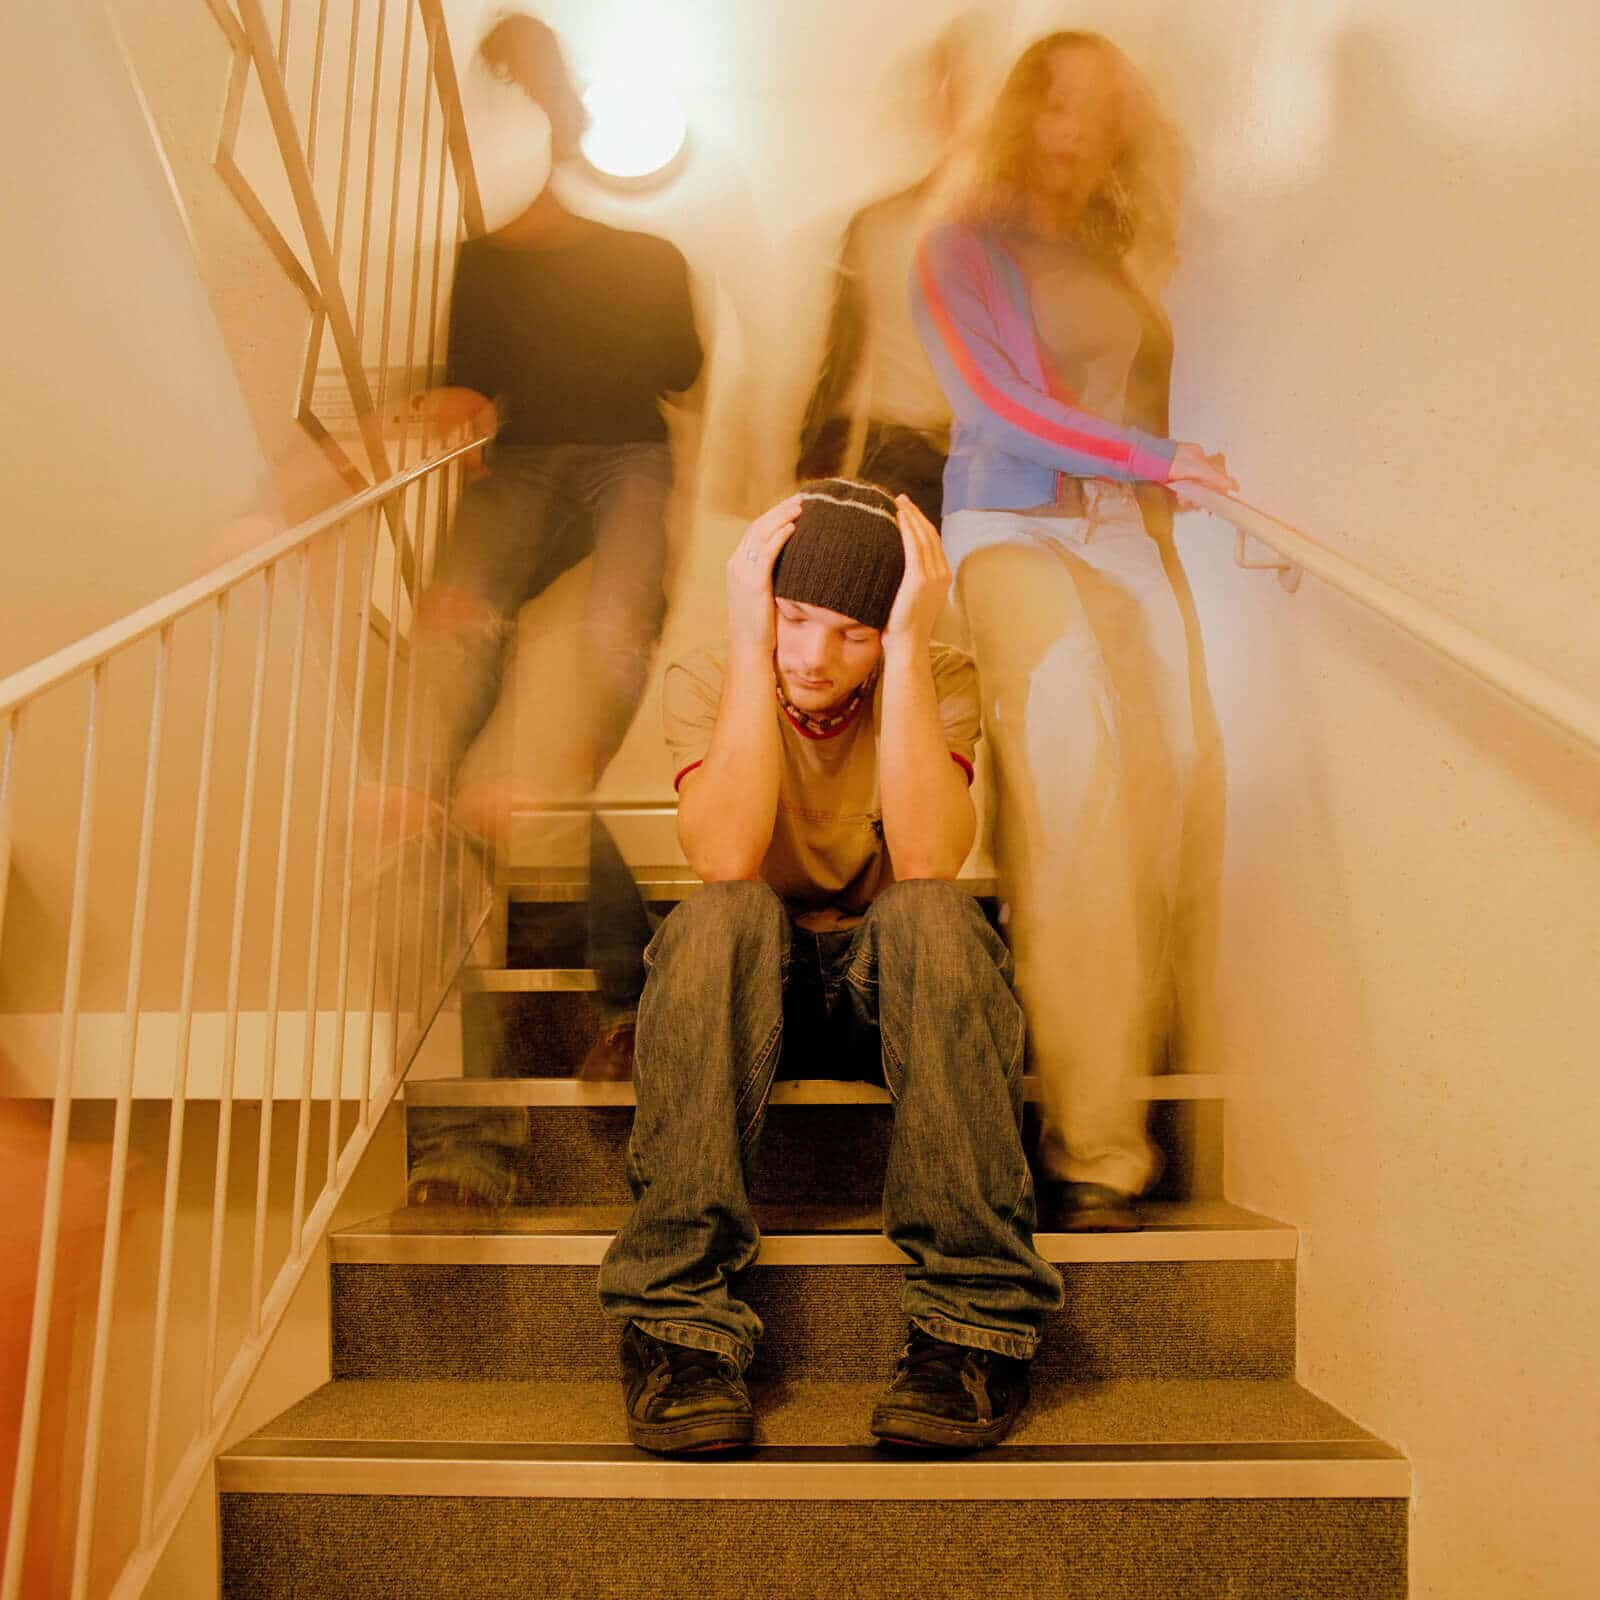 Thumnail photo of The 5 Most Commonly Abused Drugs On College Campuses